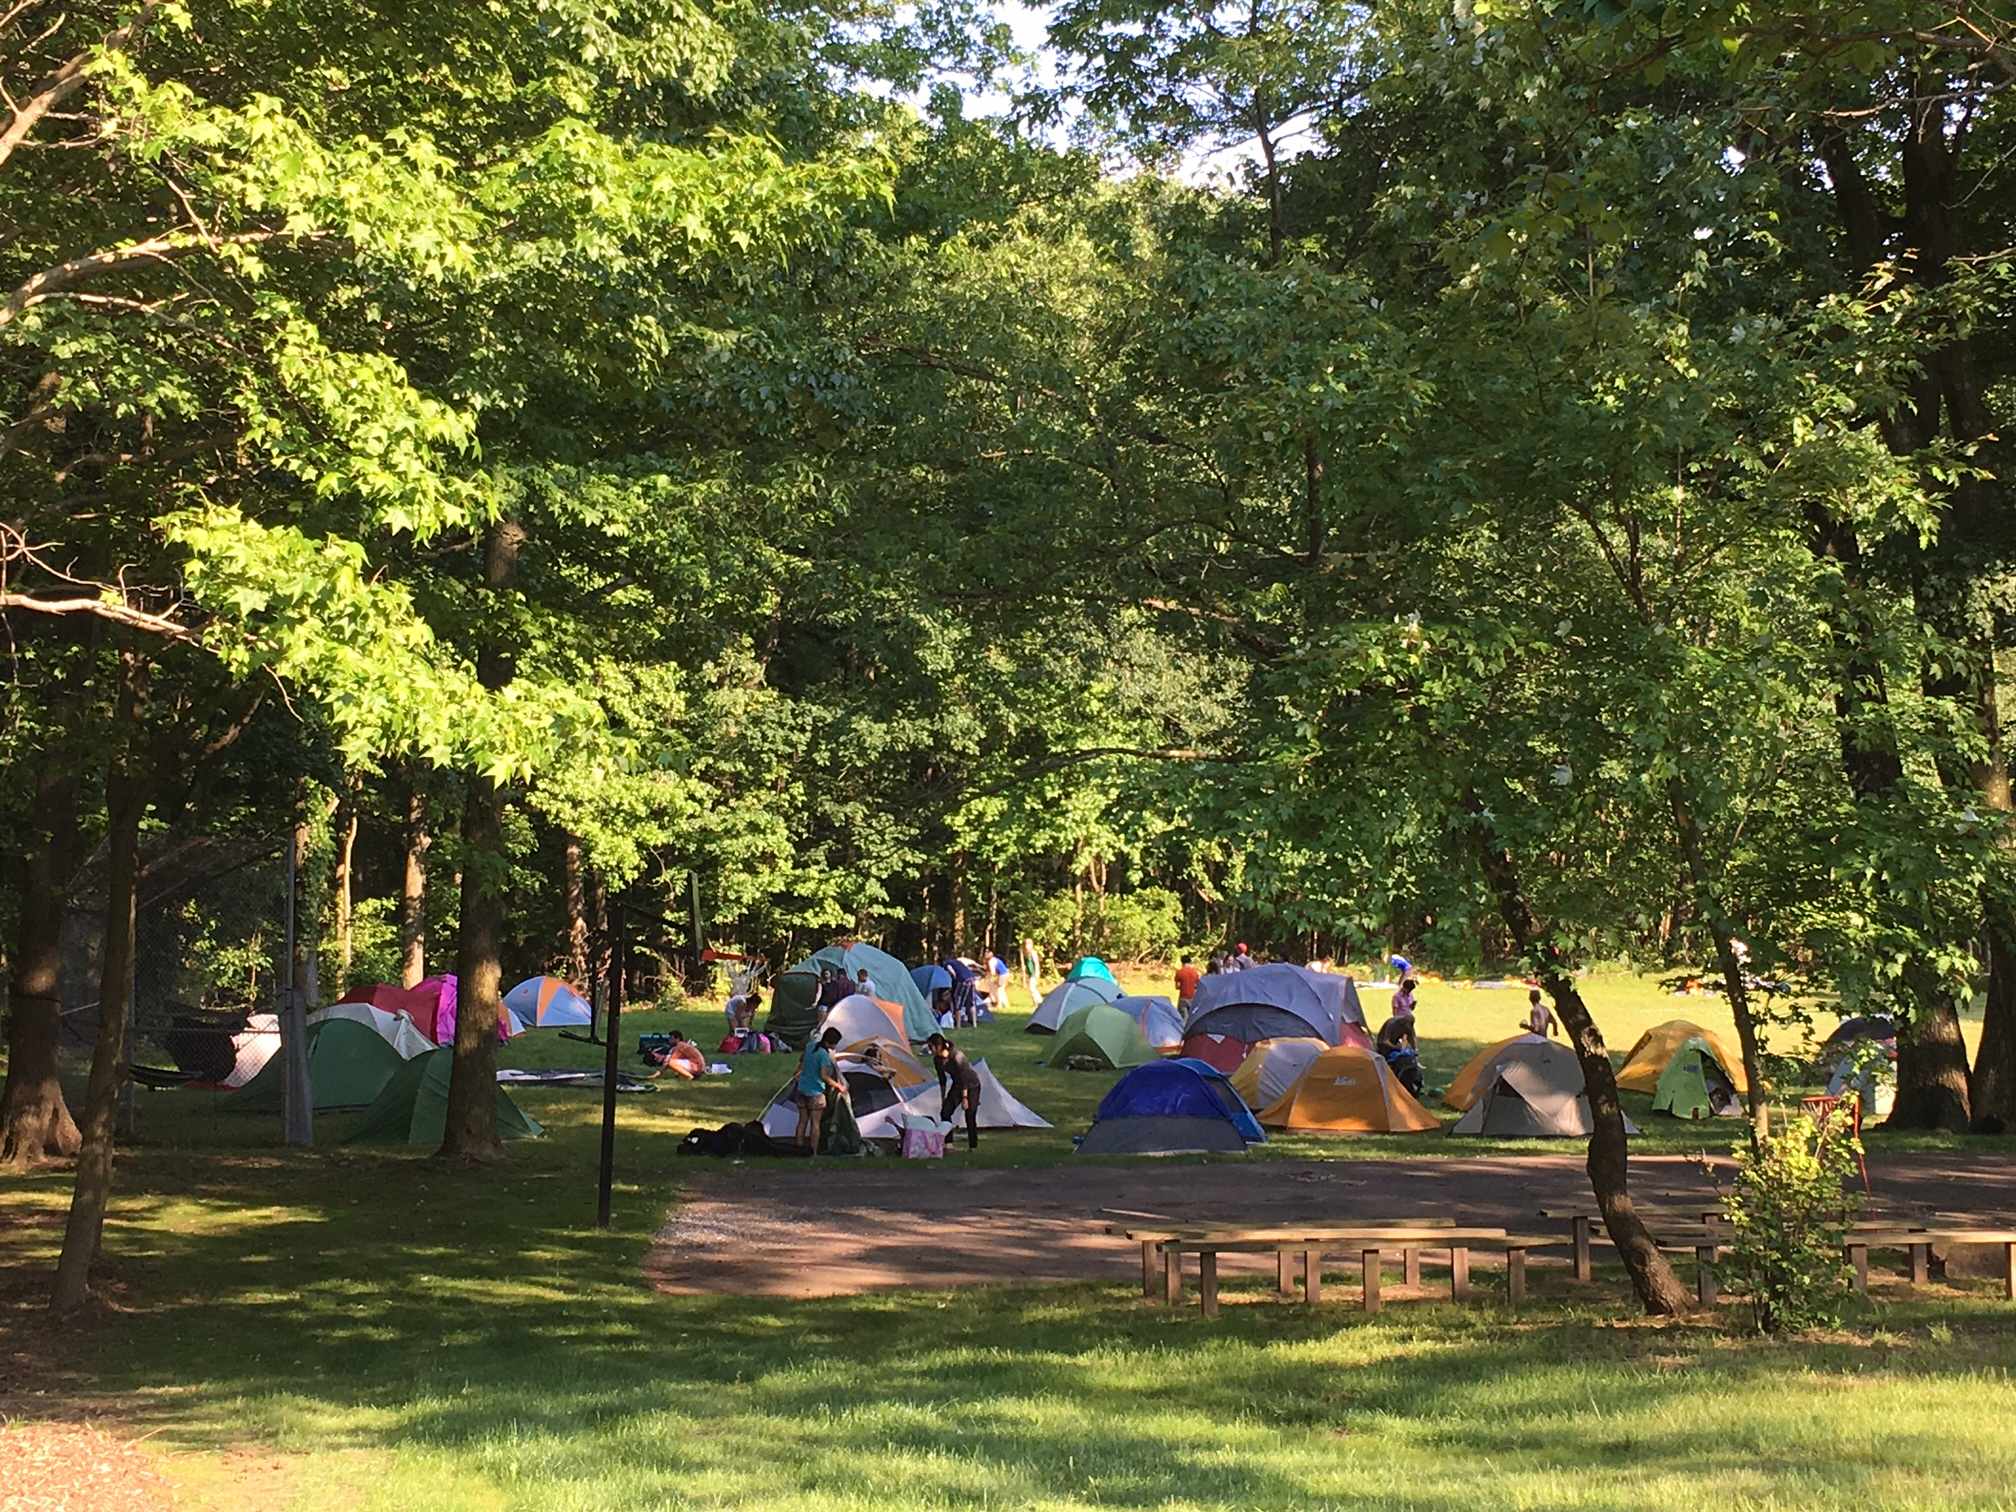 Campers set up at the OutdoorFest 2016 campsite